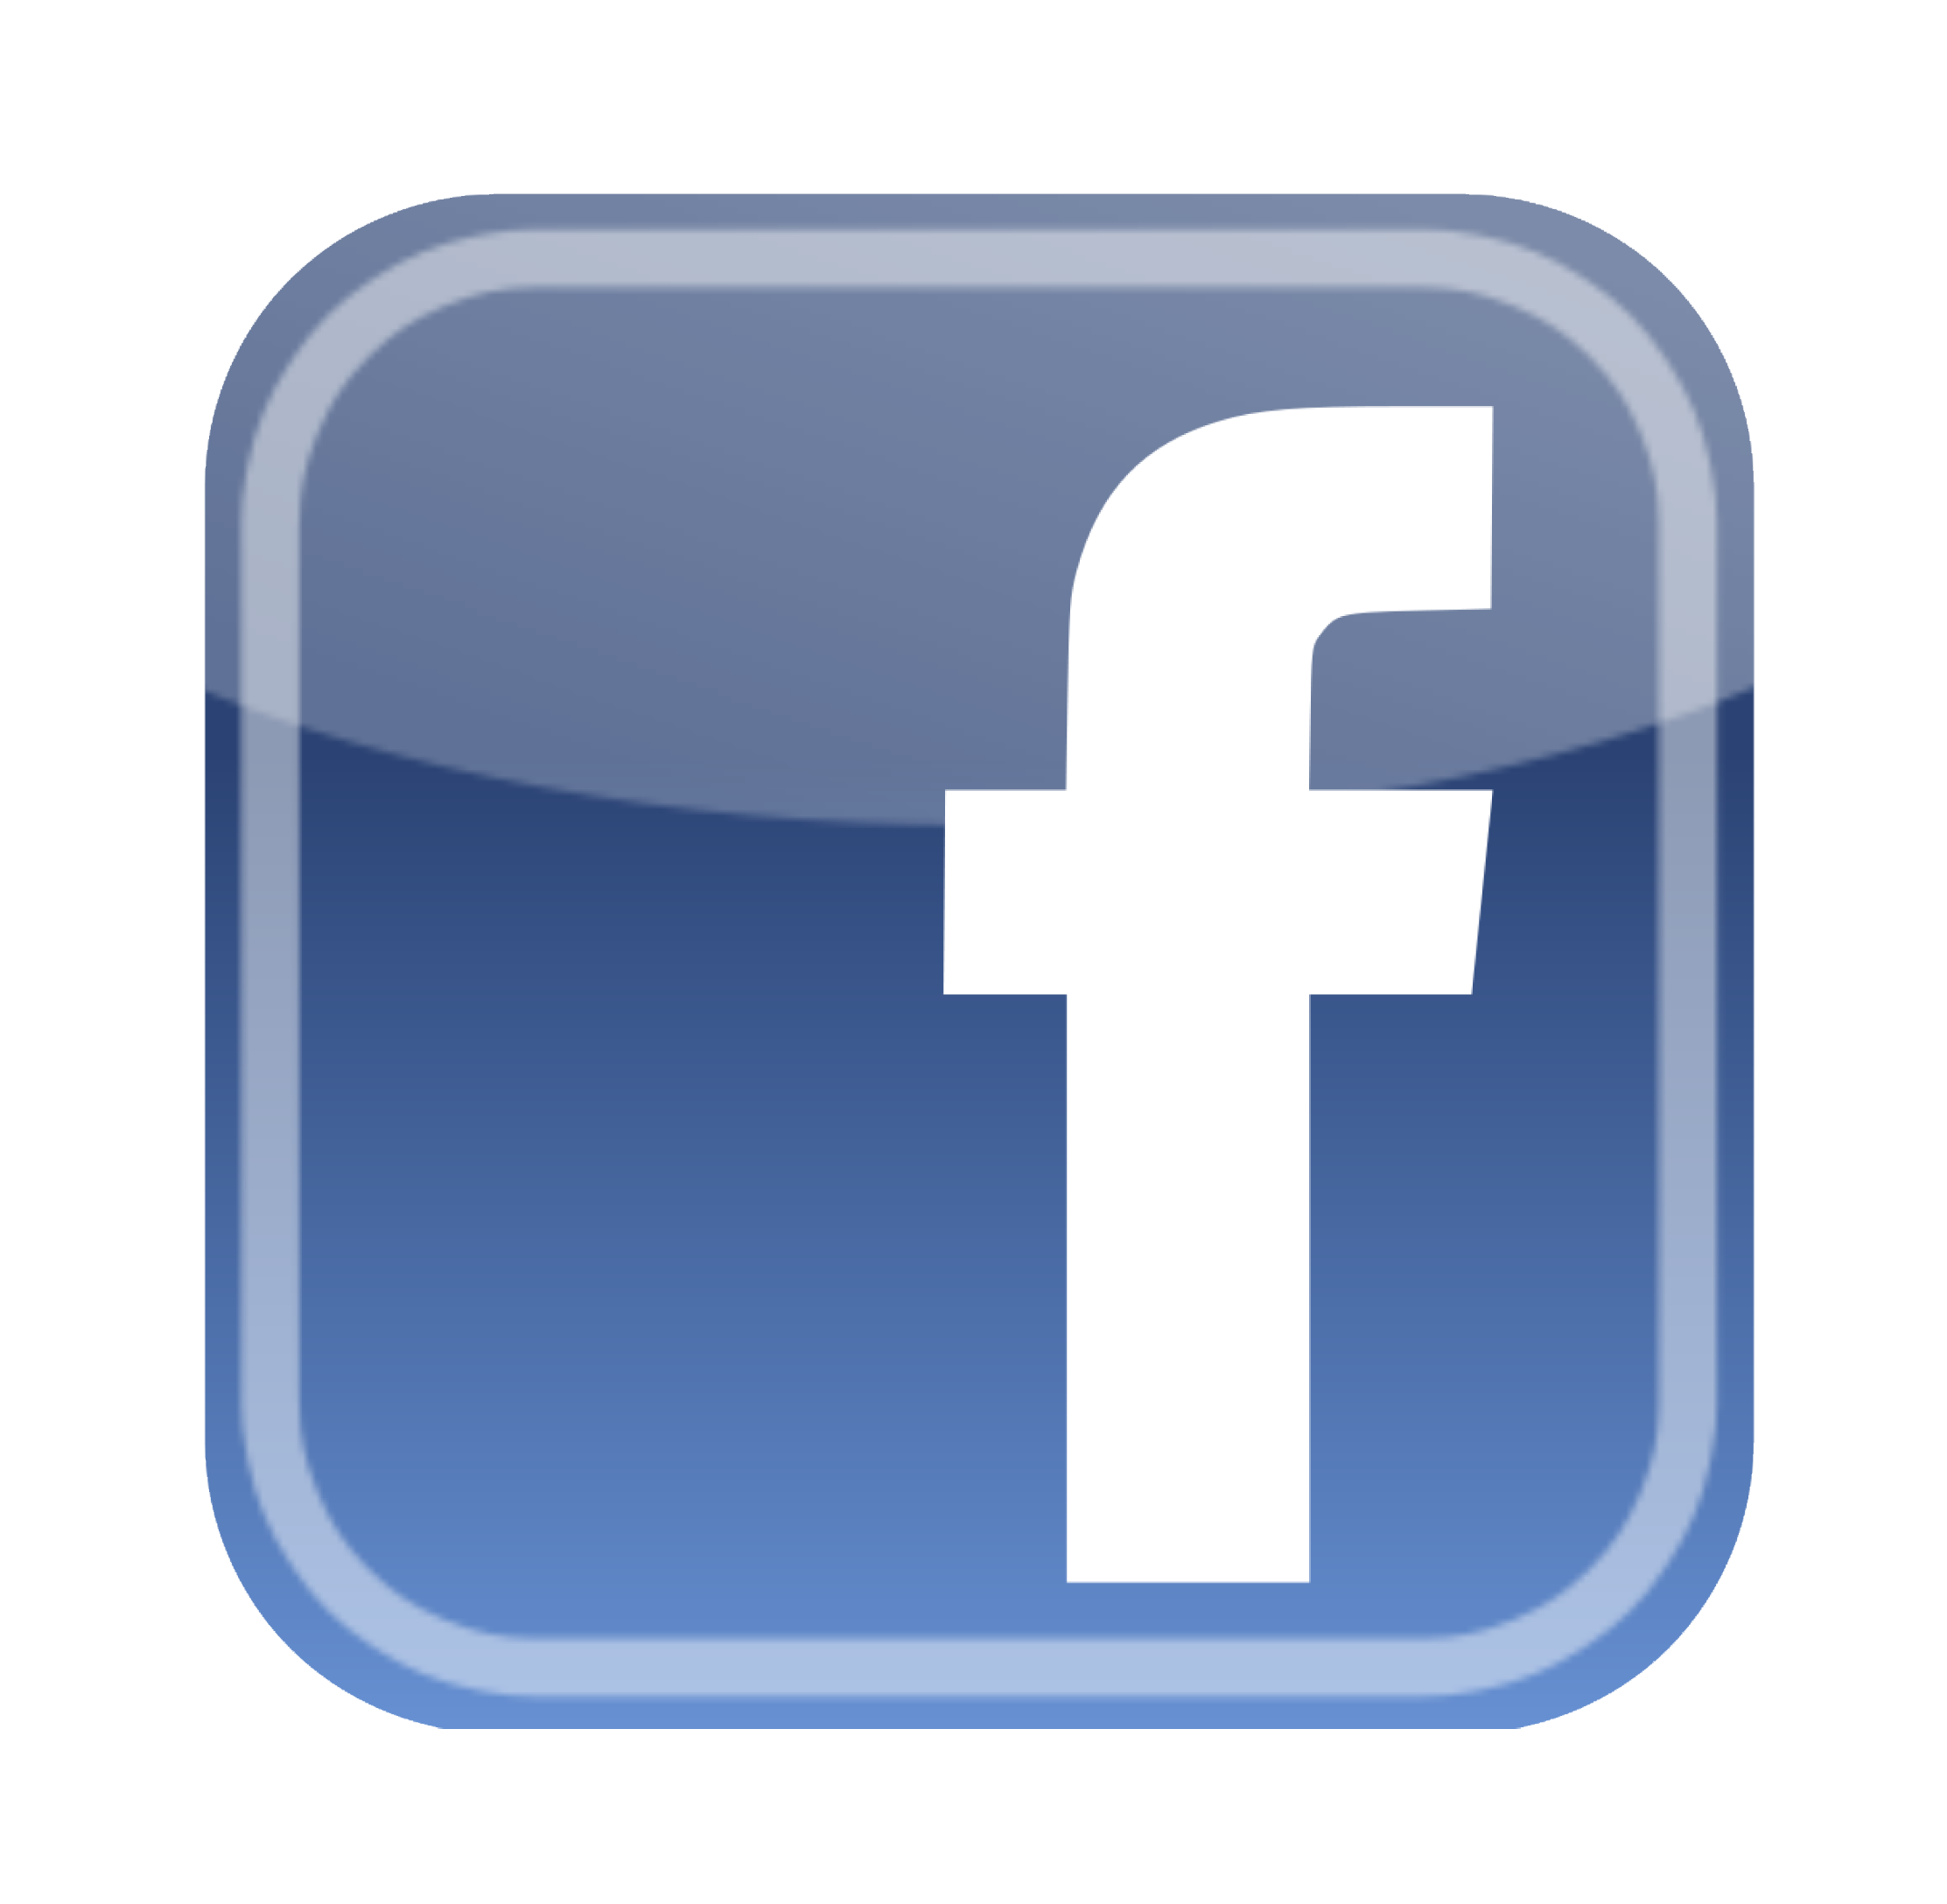 Facebook share button png. Logo transparent pictures free